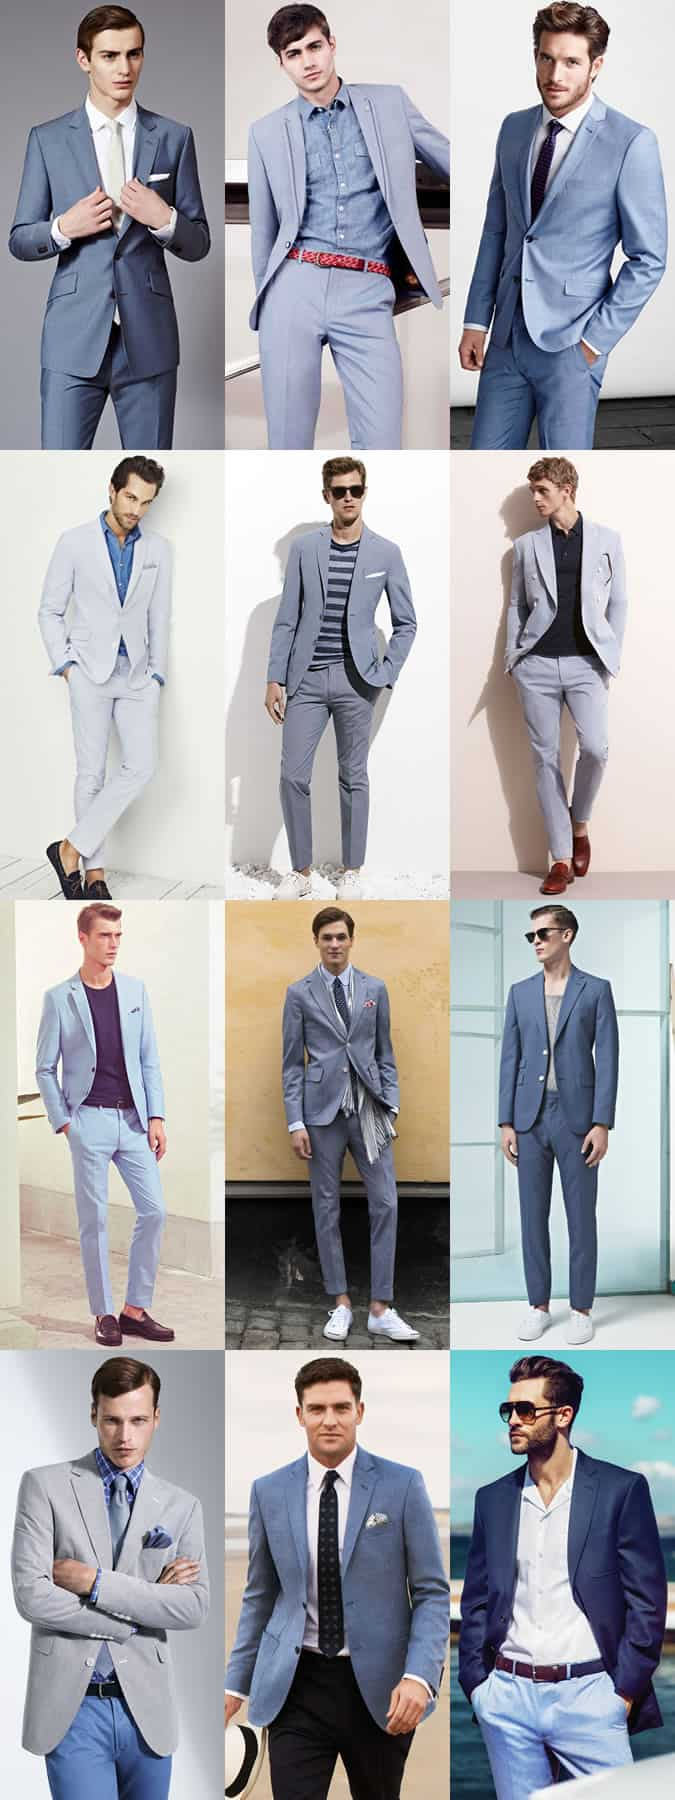 Light/Petrol Blue Suits for Men - Outfit Inspiration Lookbook